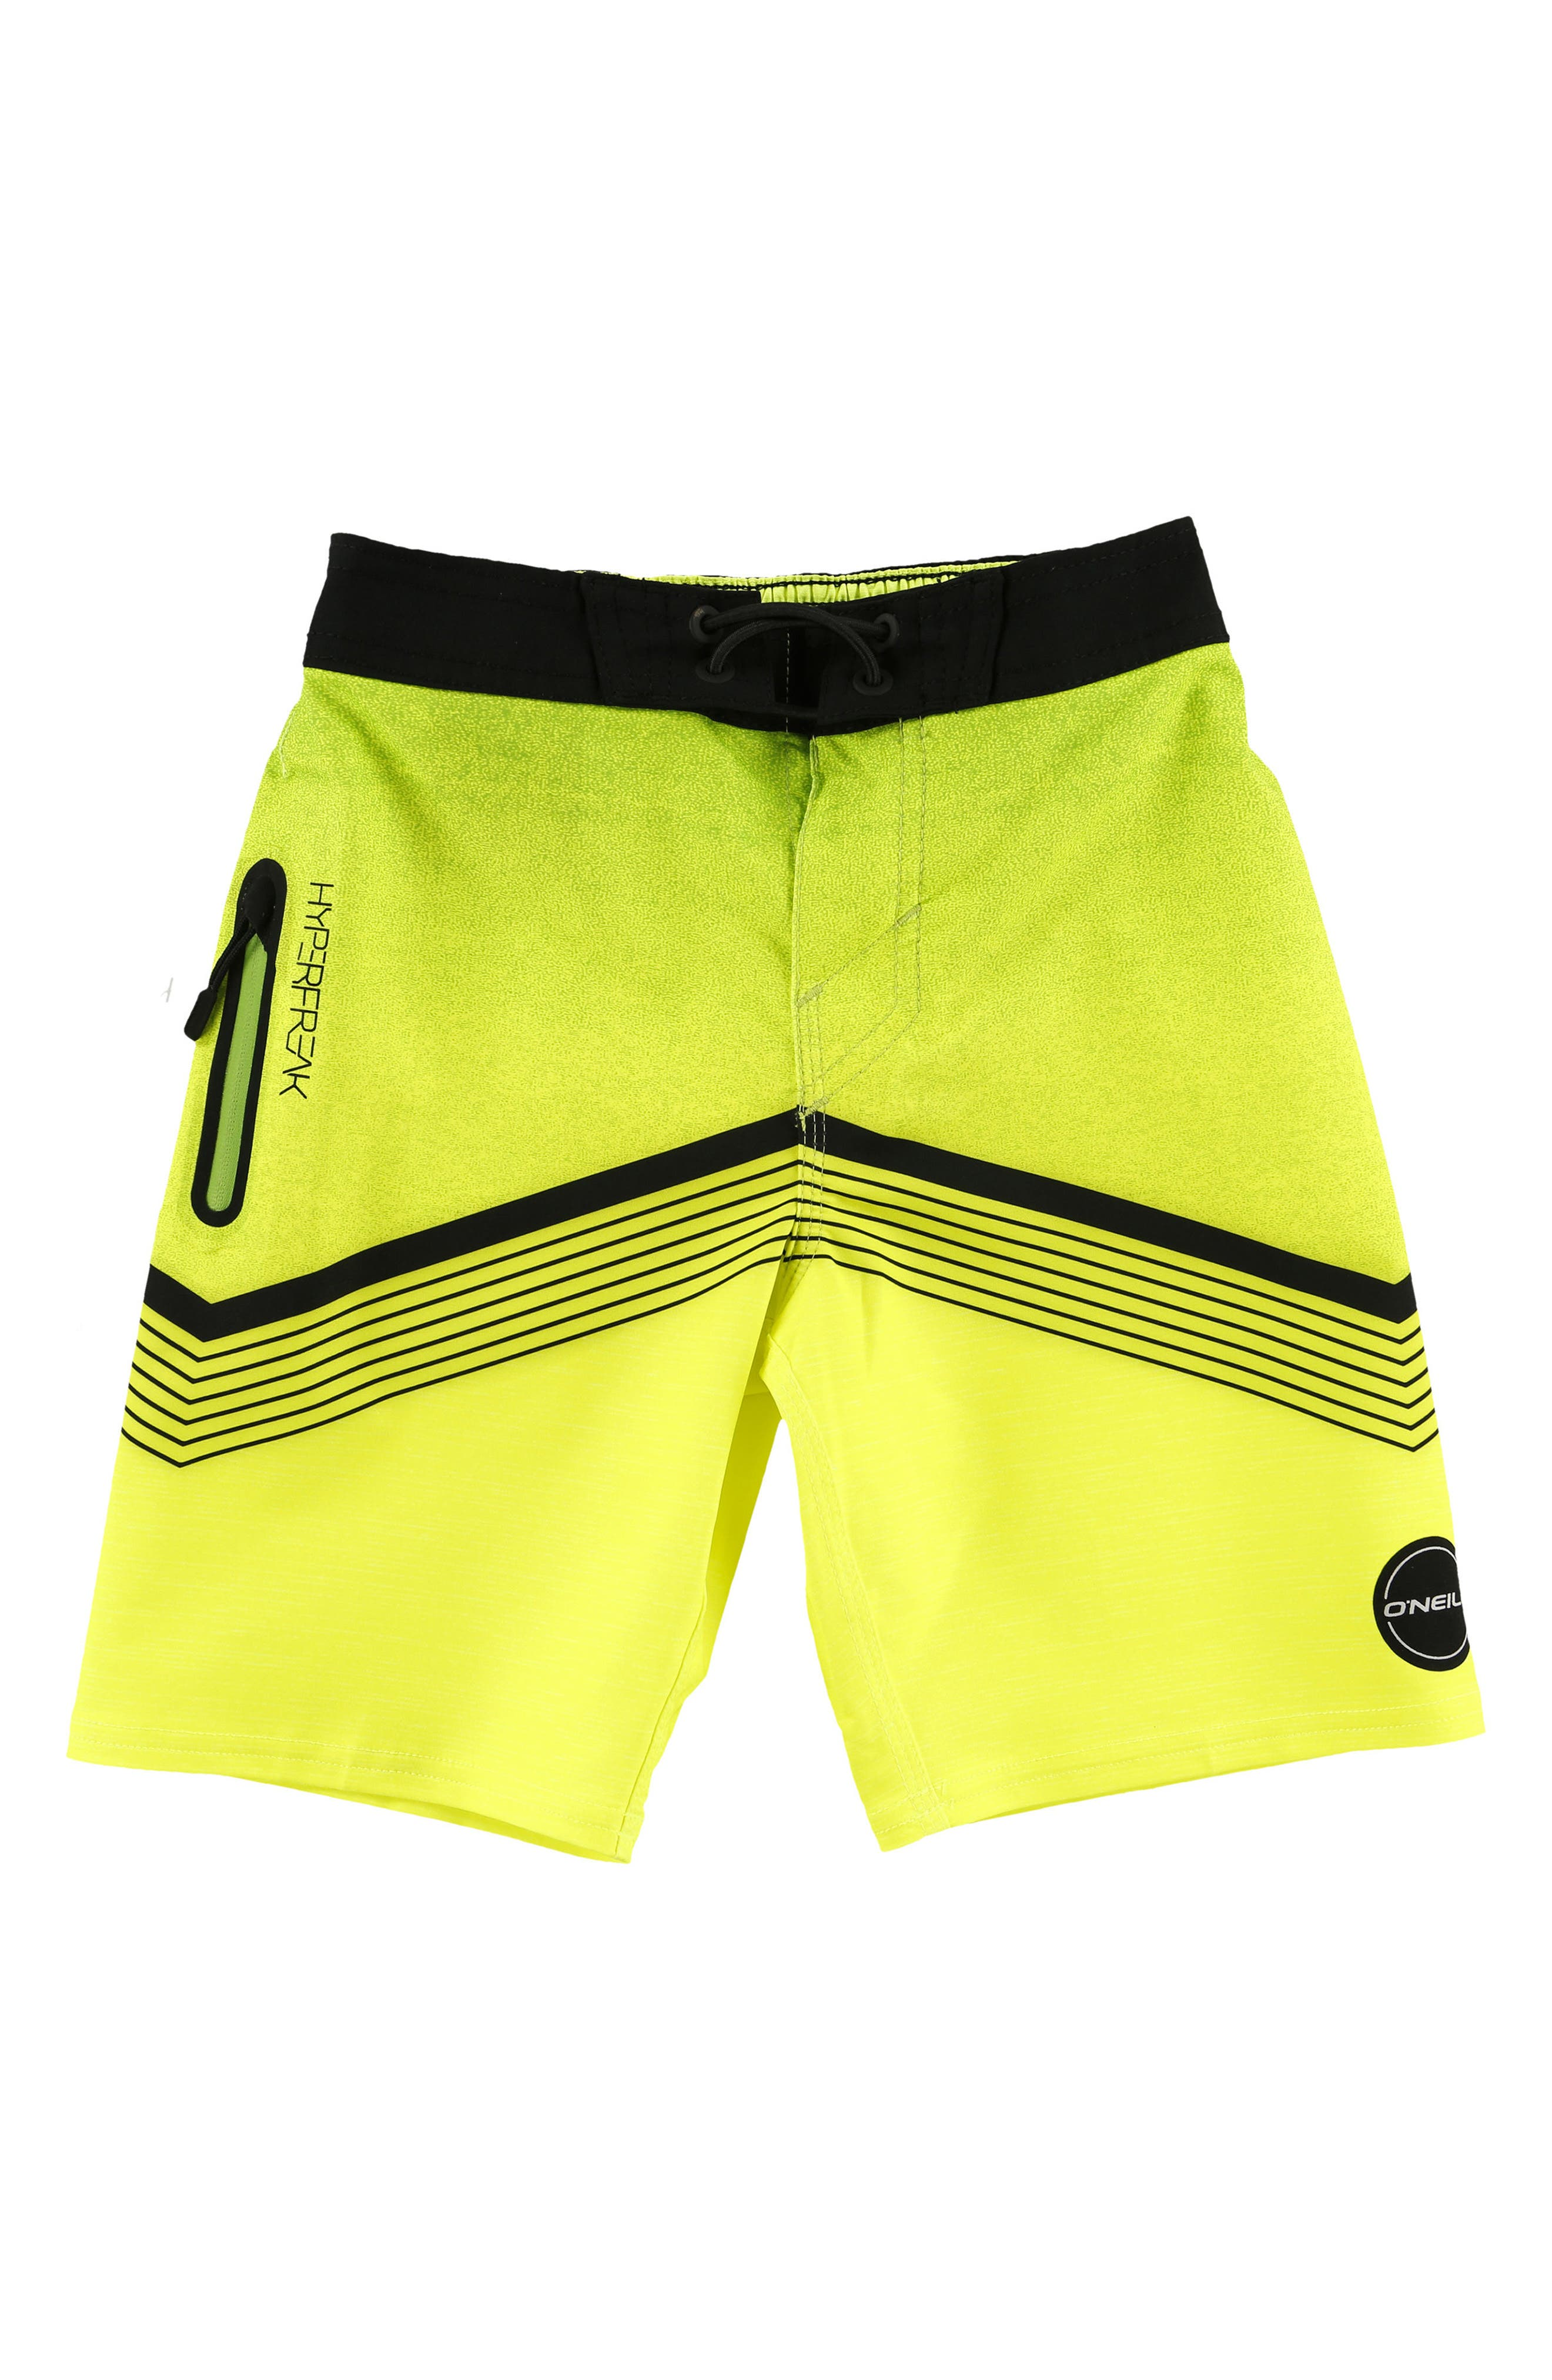 Hyperfreak Stretch Board Shorts,                         Main,                         color, 300